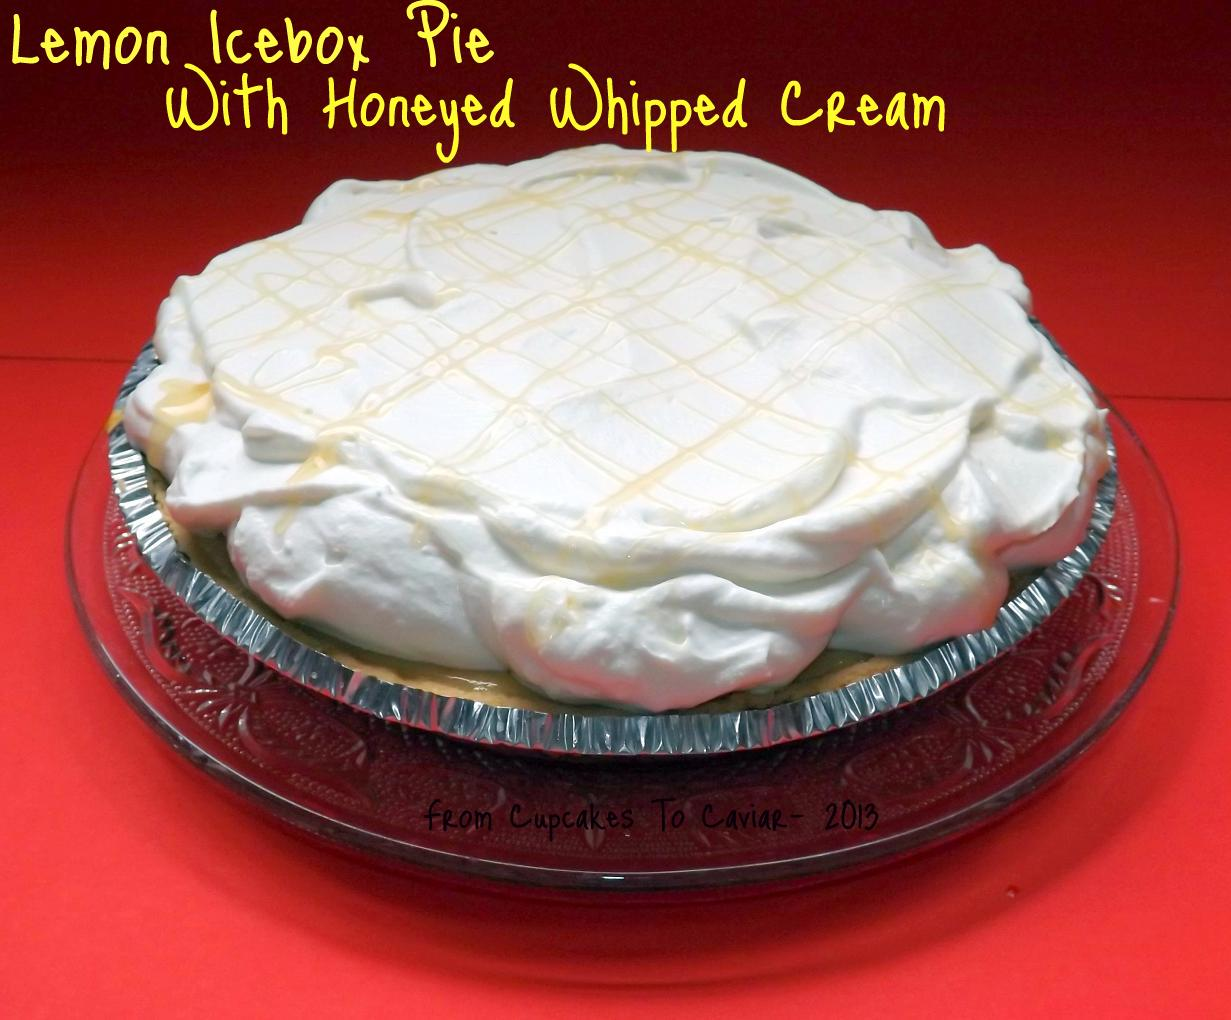 Lemon Icebox Pie With Honeyed Whipped Cream